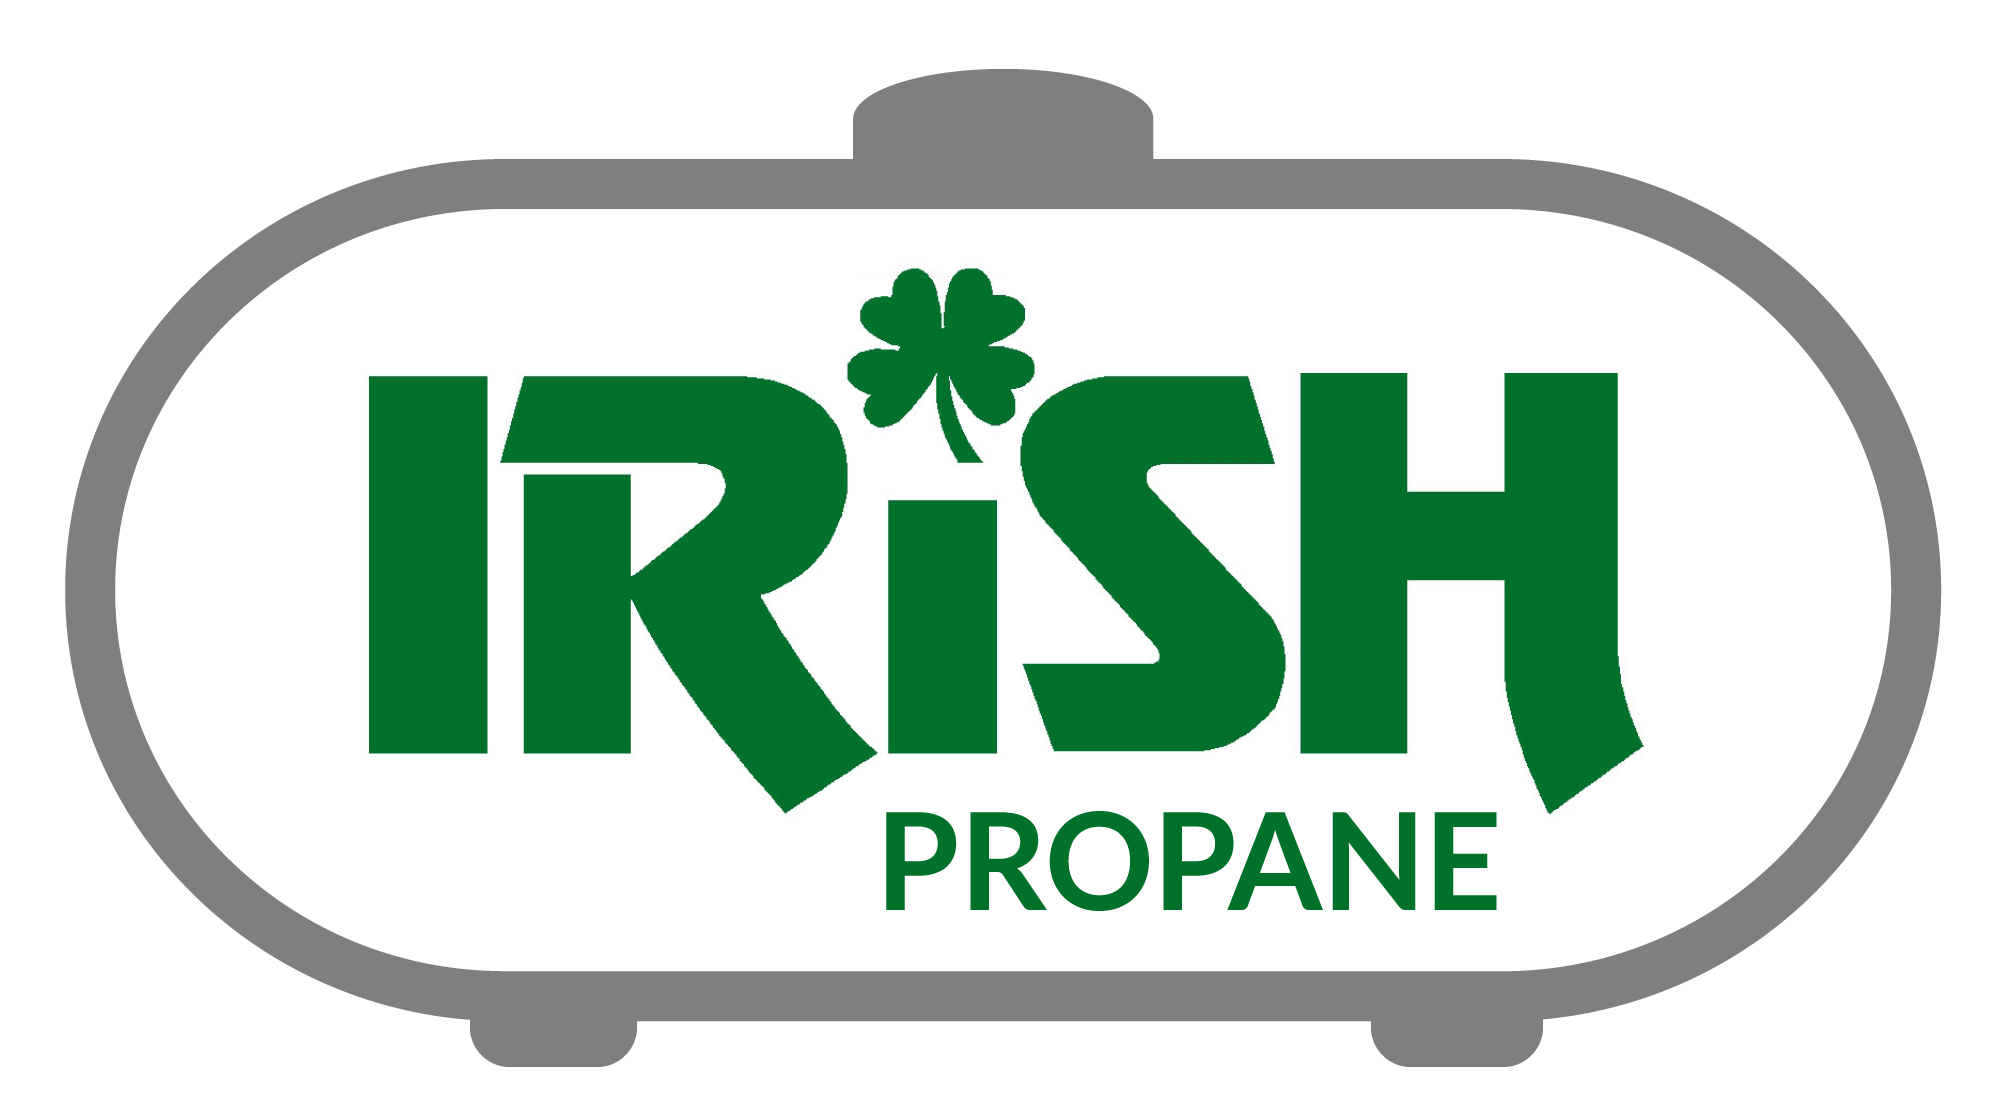 Expert services in rochester. Gas clipart propane